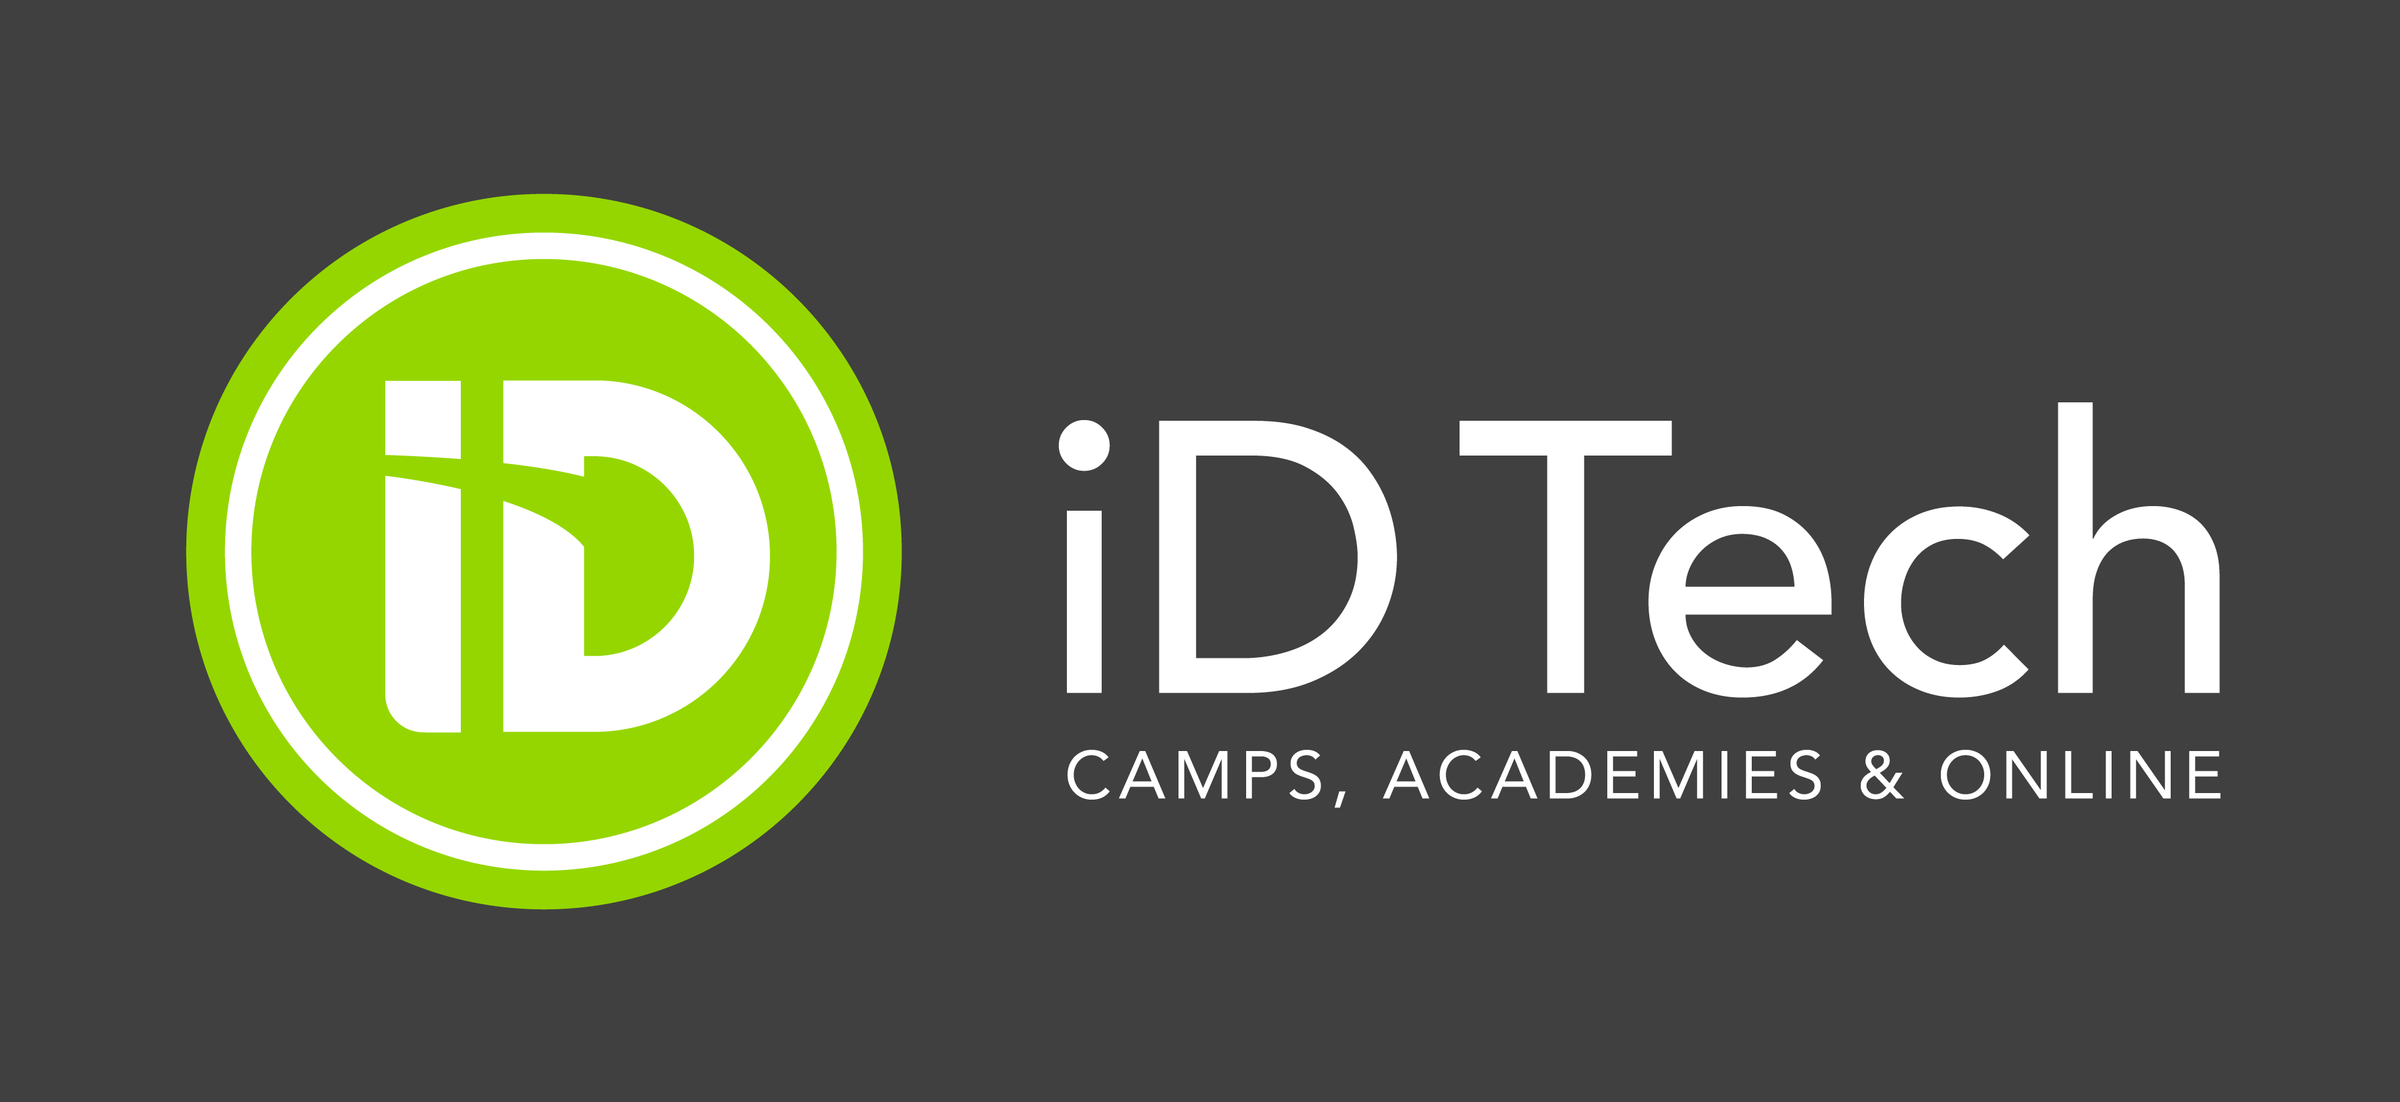 iD Tech Camps: #1 in STEM Education - Held at Colorado State University